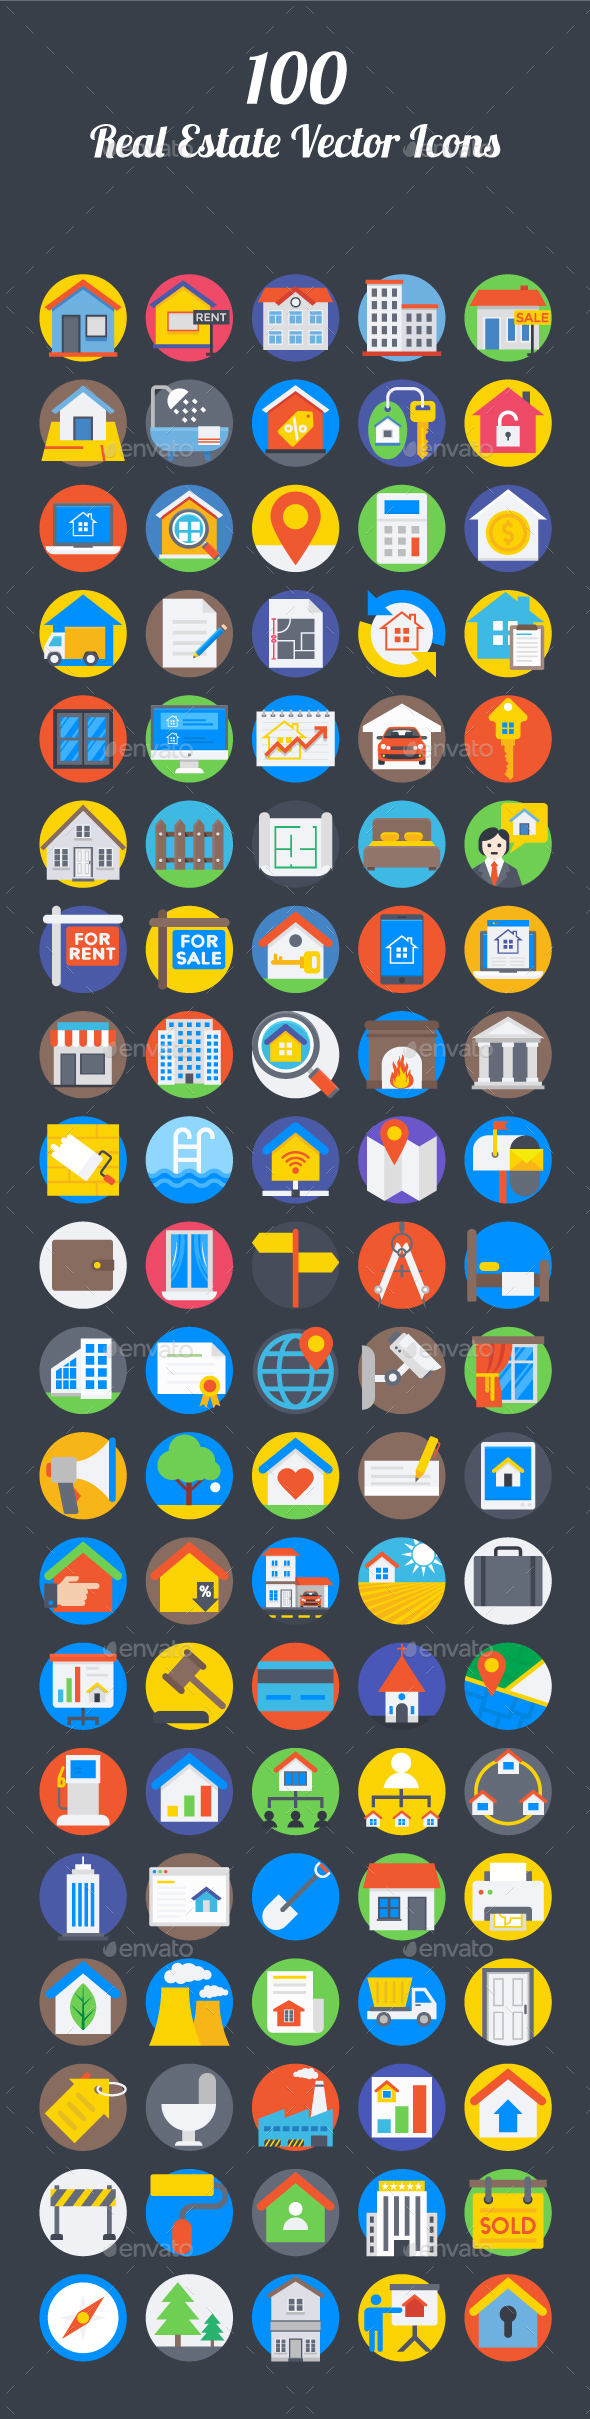 100 Real Estate Vector Icons - Icons